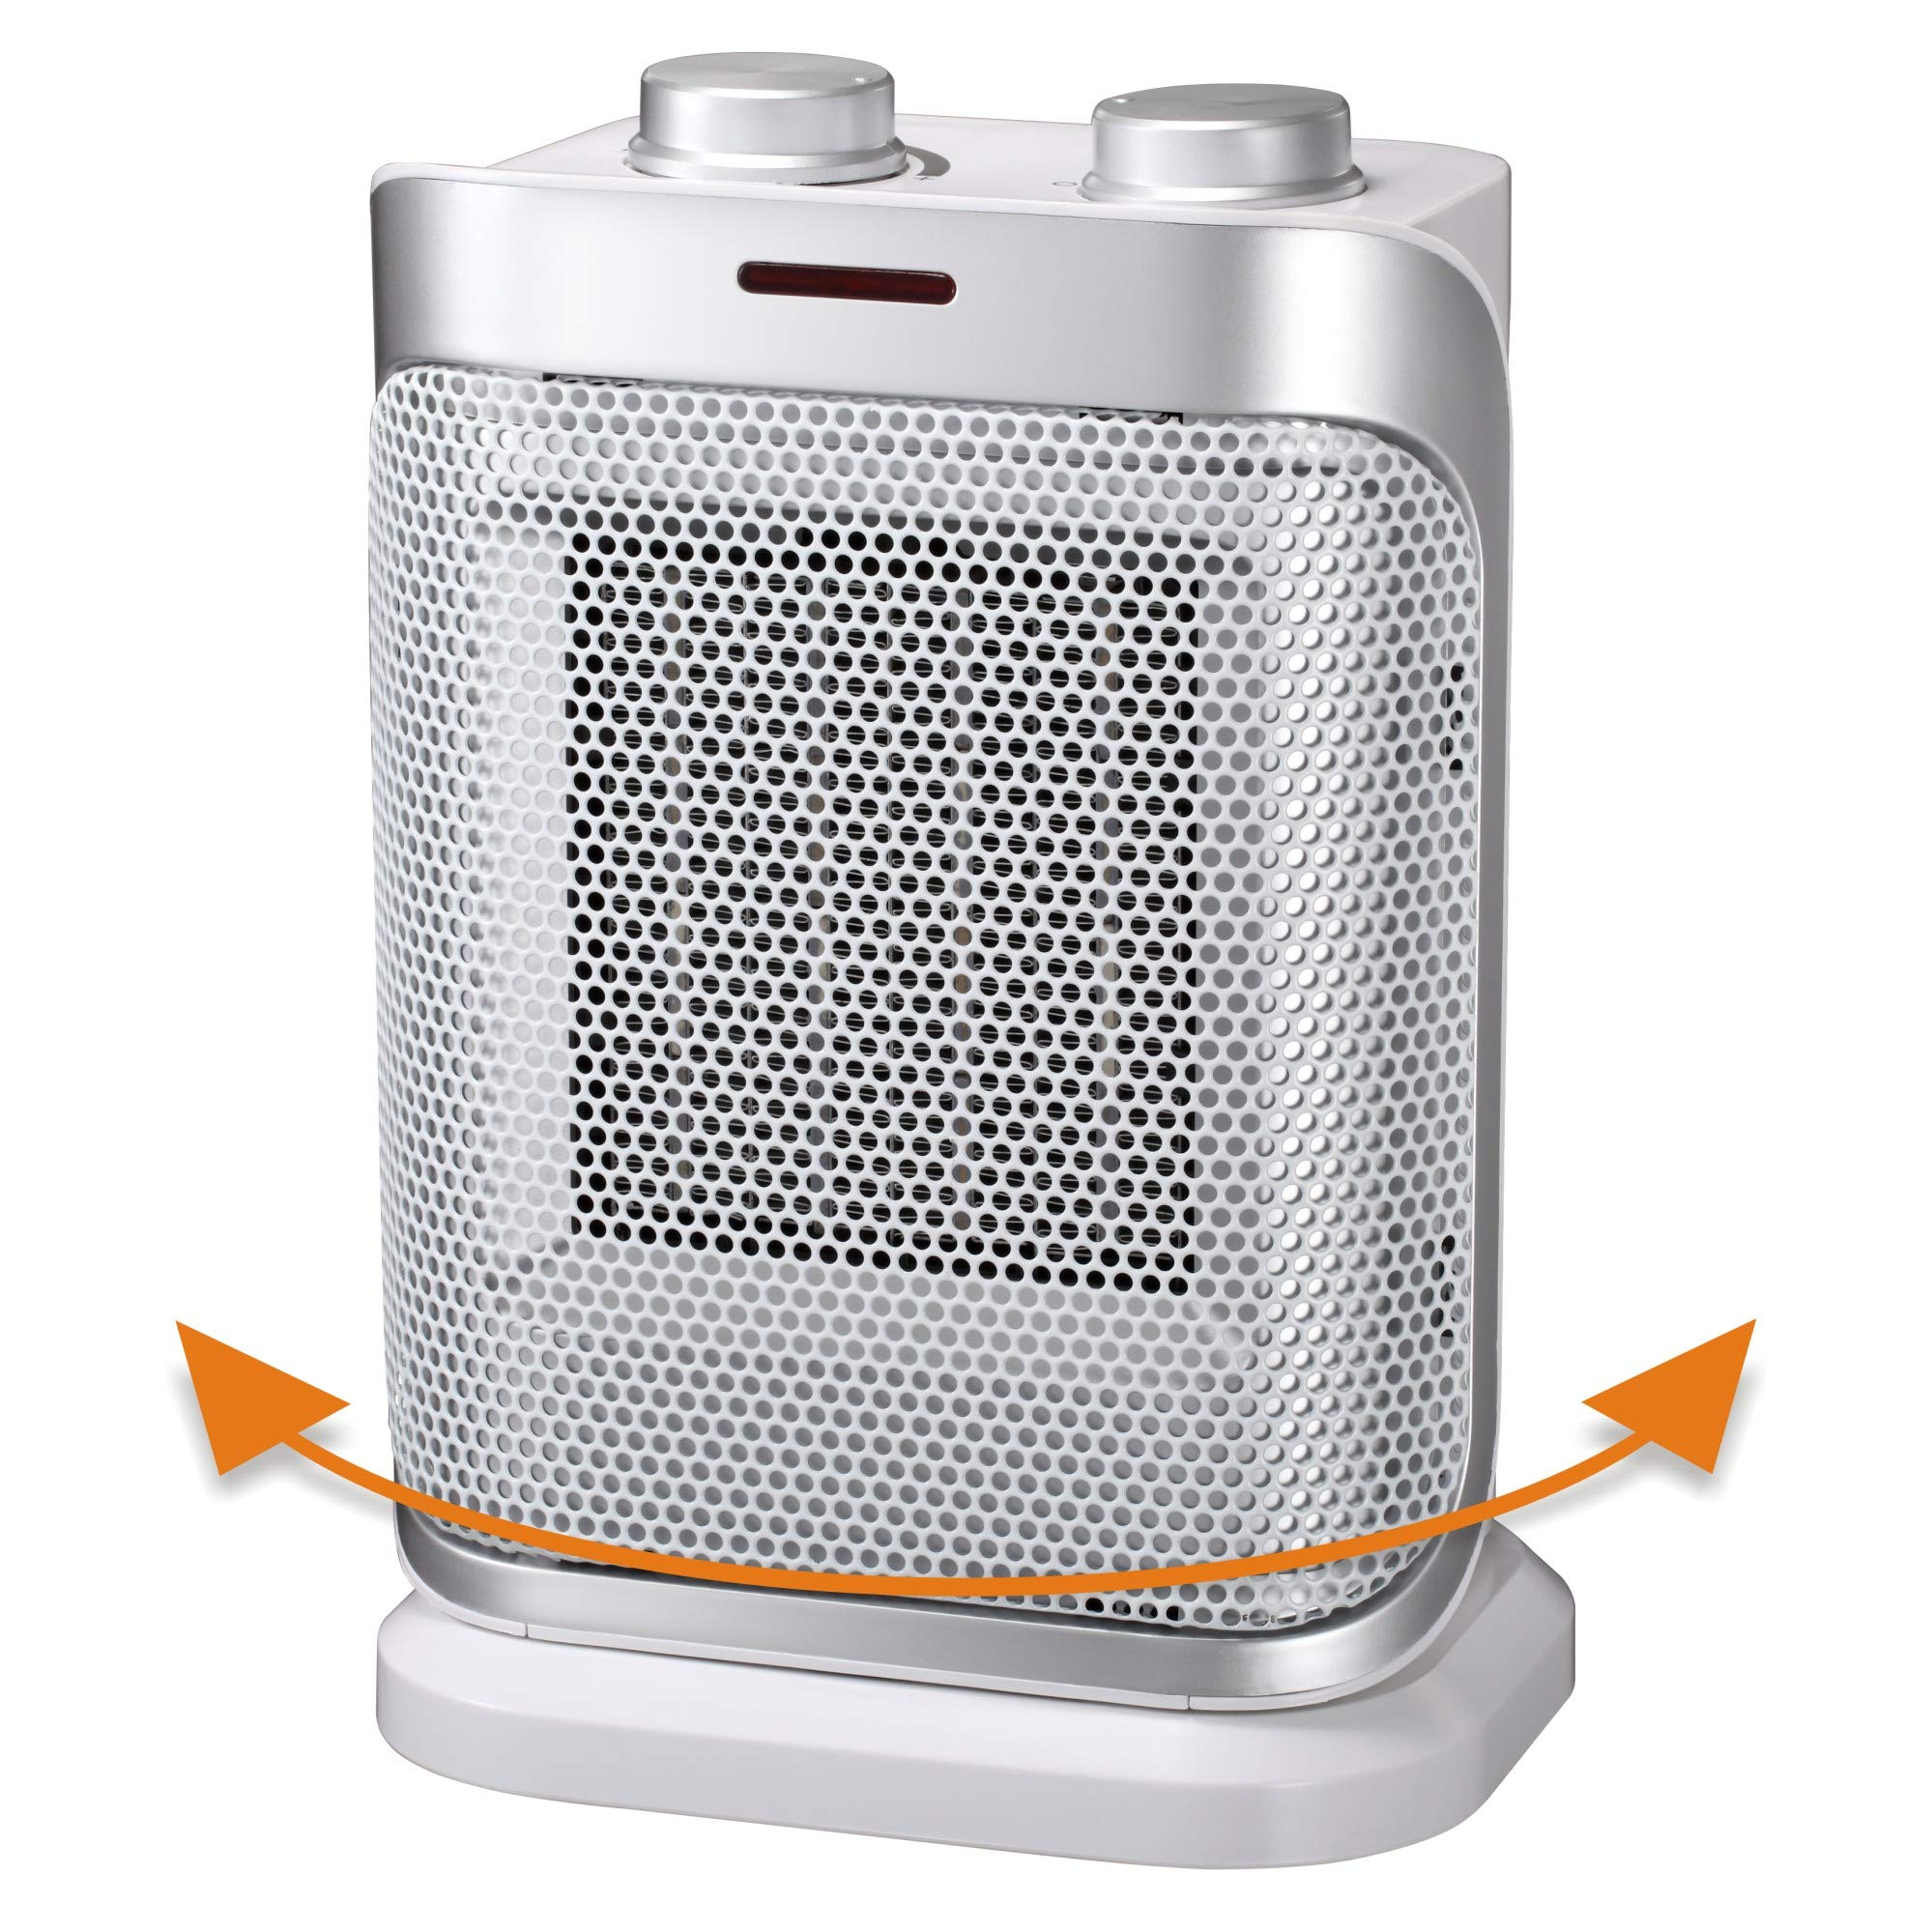 andily Space Heater Electric Heater for Home and Office Oscillating Ceramic Small Heater with Thermostat, 750W/1500W